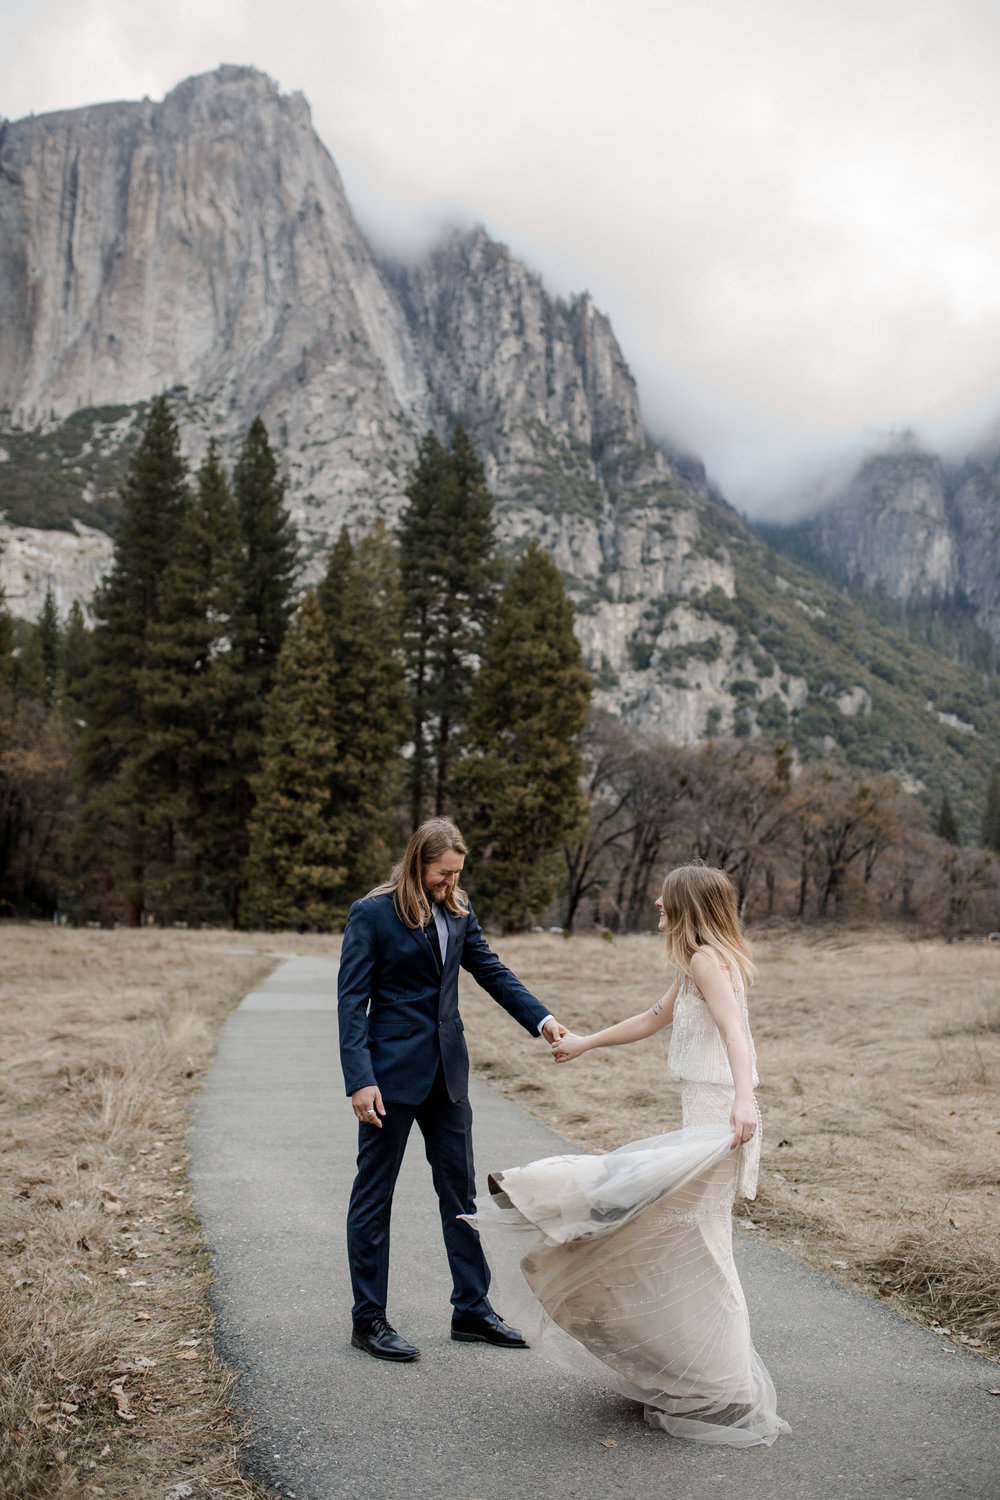 nicole-daacke-photography-yousemite-national-park-elopement-photographer-winter-cloud-moody-elope-inspiration-yosemite-valley-tunnel-view-winter-cloud-fog-weather-wedding-photos-26.jpg